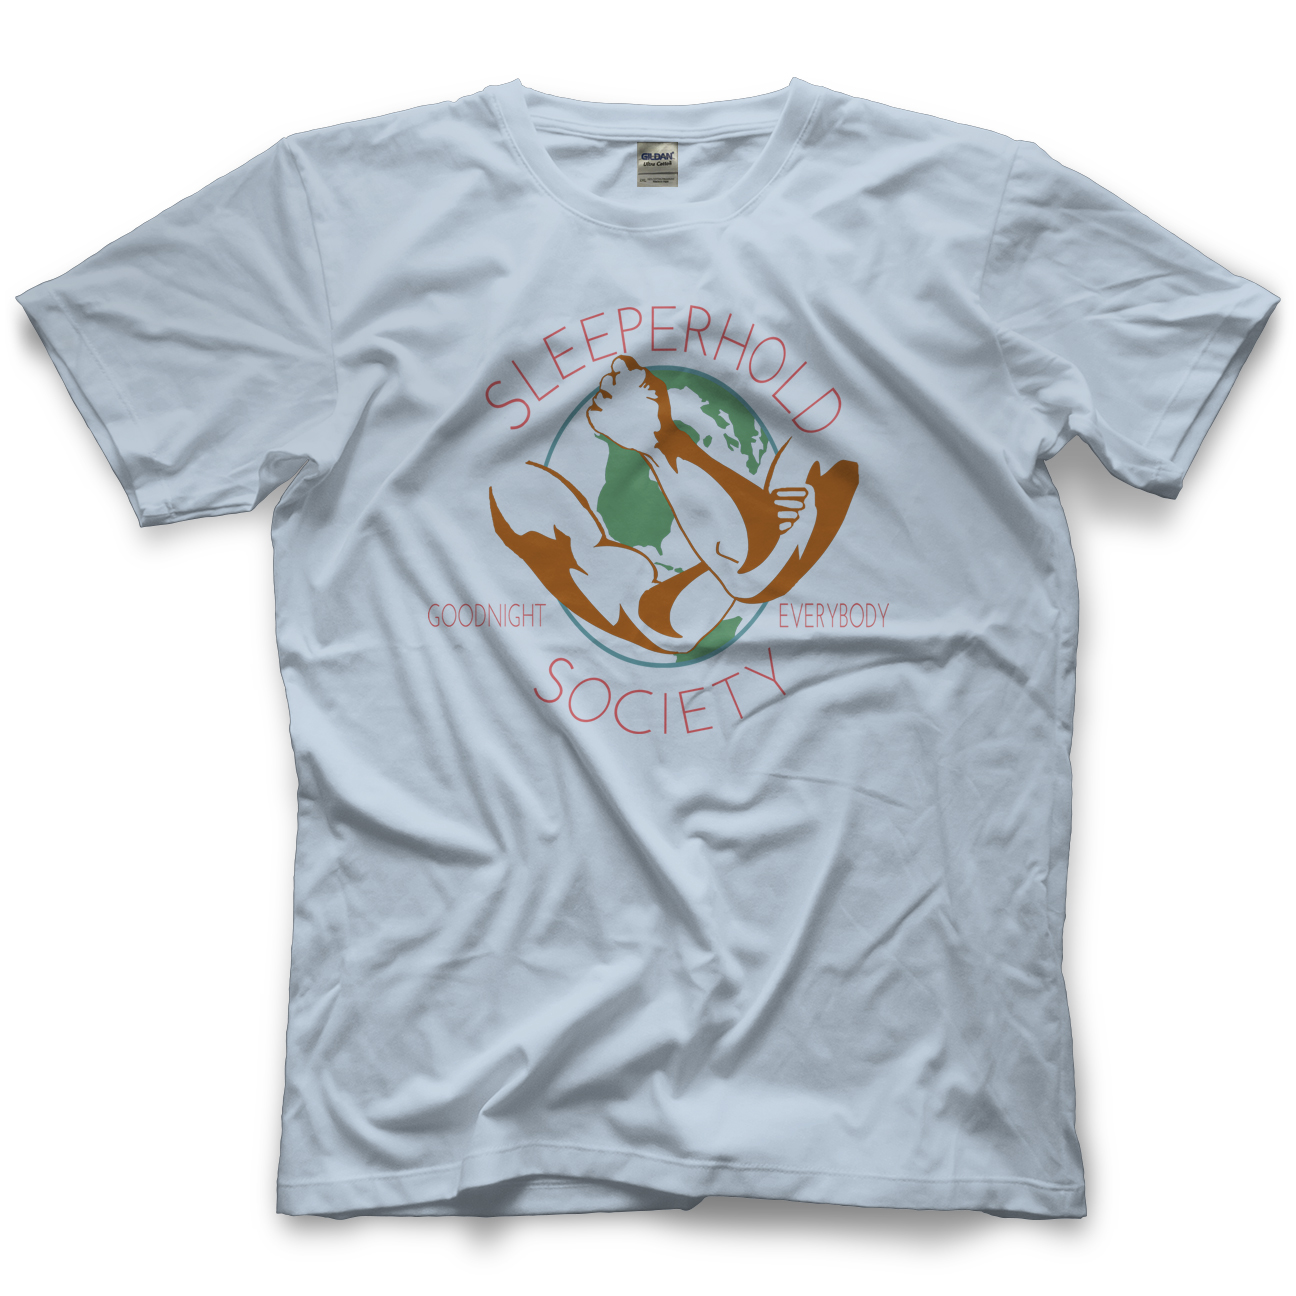 RJ City Sleeperhold Society T-shirt